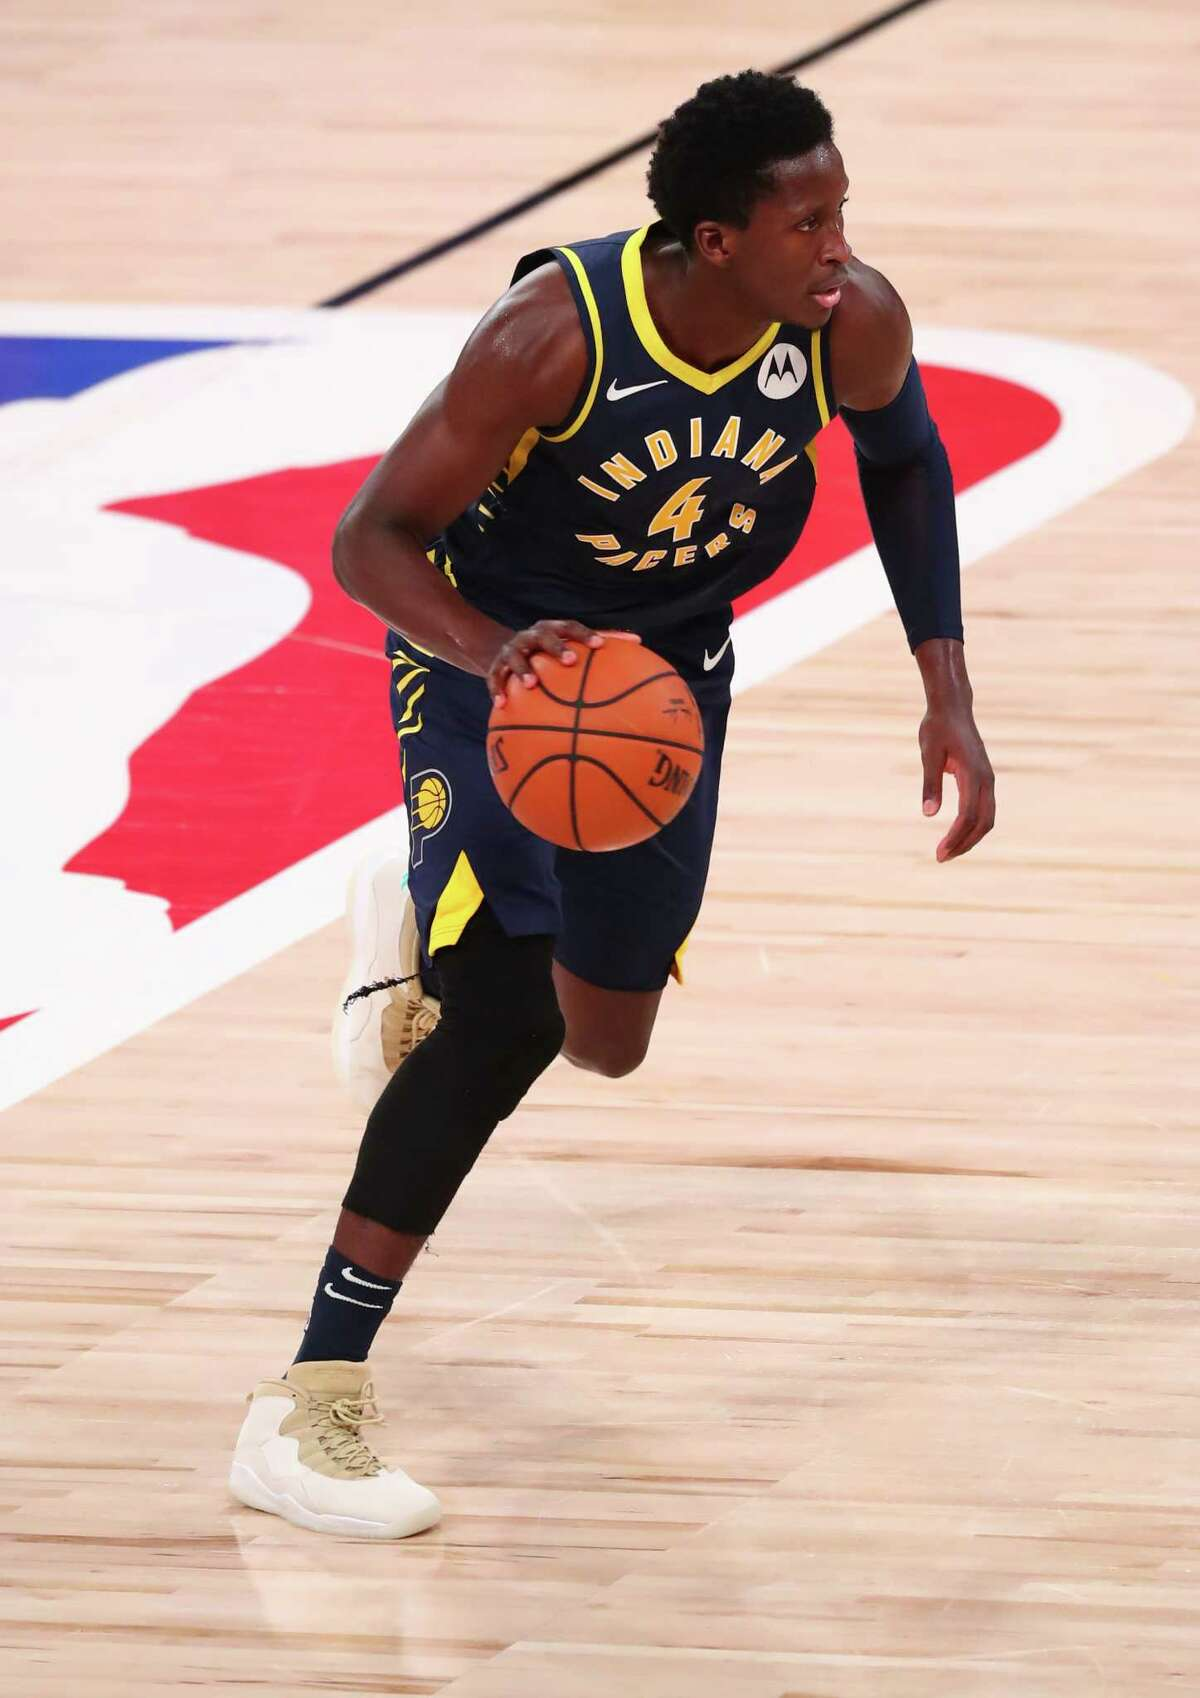 LAKE BUENA VISTA, FLORIDA - AUGUST 12: Victor Oladipo #4 of the Indiana Pacers brings the ball up court against the Houston Rockets in the fourth quarter at AdventHealth Arena at ESPN Wide World Of Sports Complex on August 12, 2020 in Lake Buena Vista, Florida. NOTE TO USER: User expressly acknowledges and agrees that, by downloading and or using this photograph, User is consenting to the terms and conditions of the Getty Images License Agreement. (Photo by Kim Klement-Pool/Getty Images)